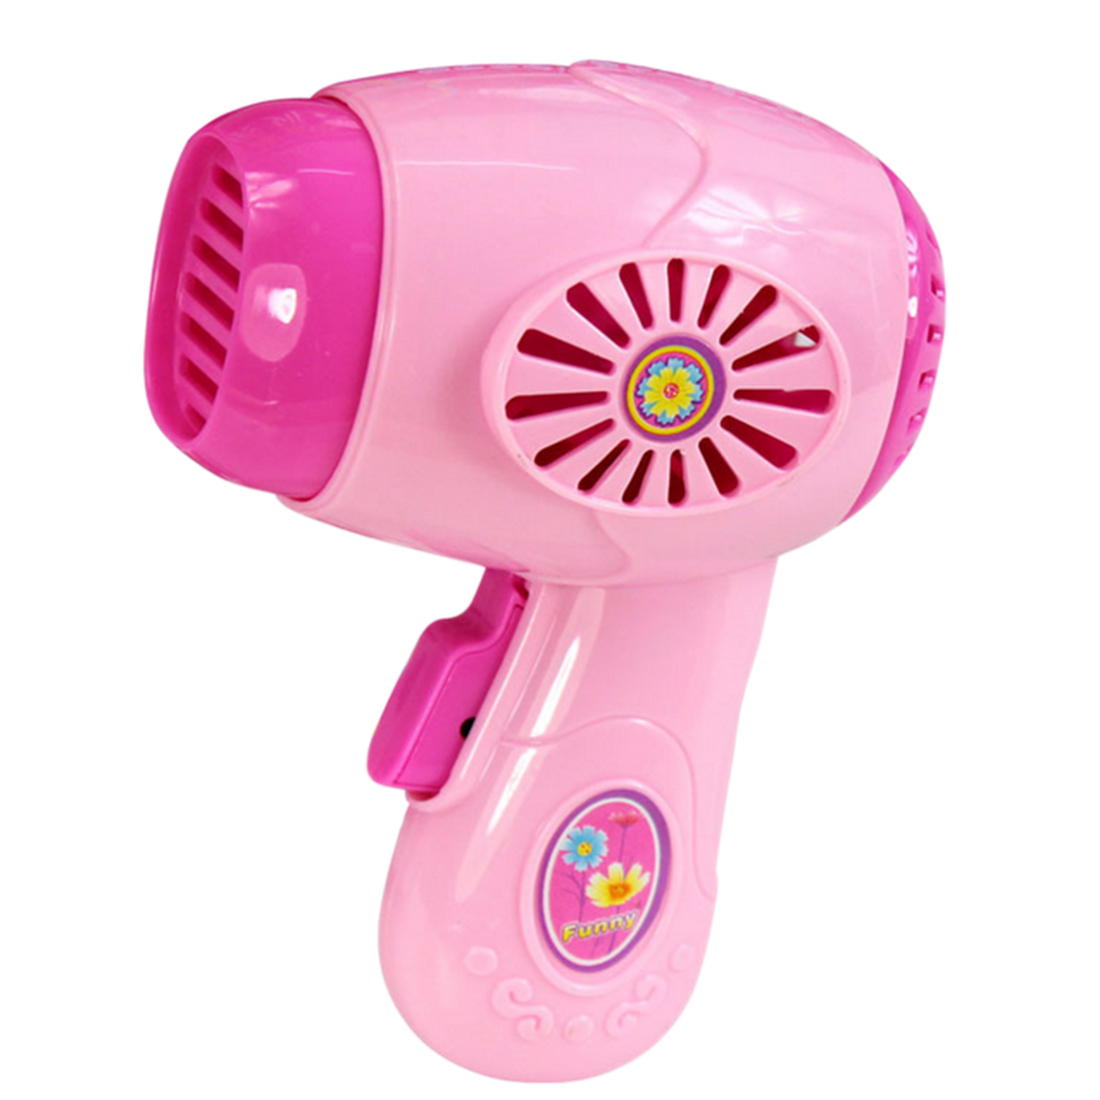 Creative New Play House Girl Family Toys New Simulation Life Small Household Appliances Hair Dryer Toys Christmas Gifts